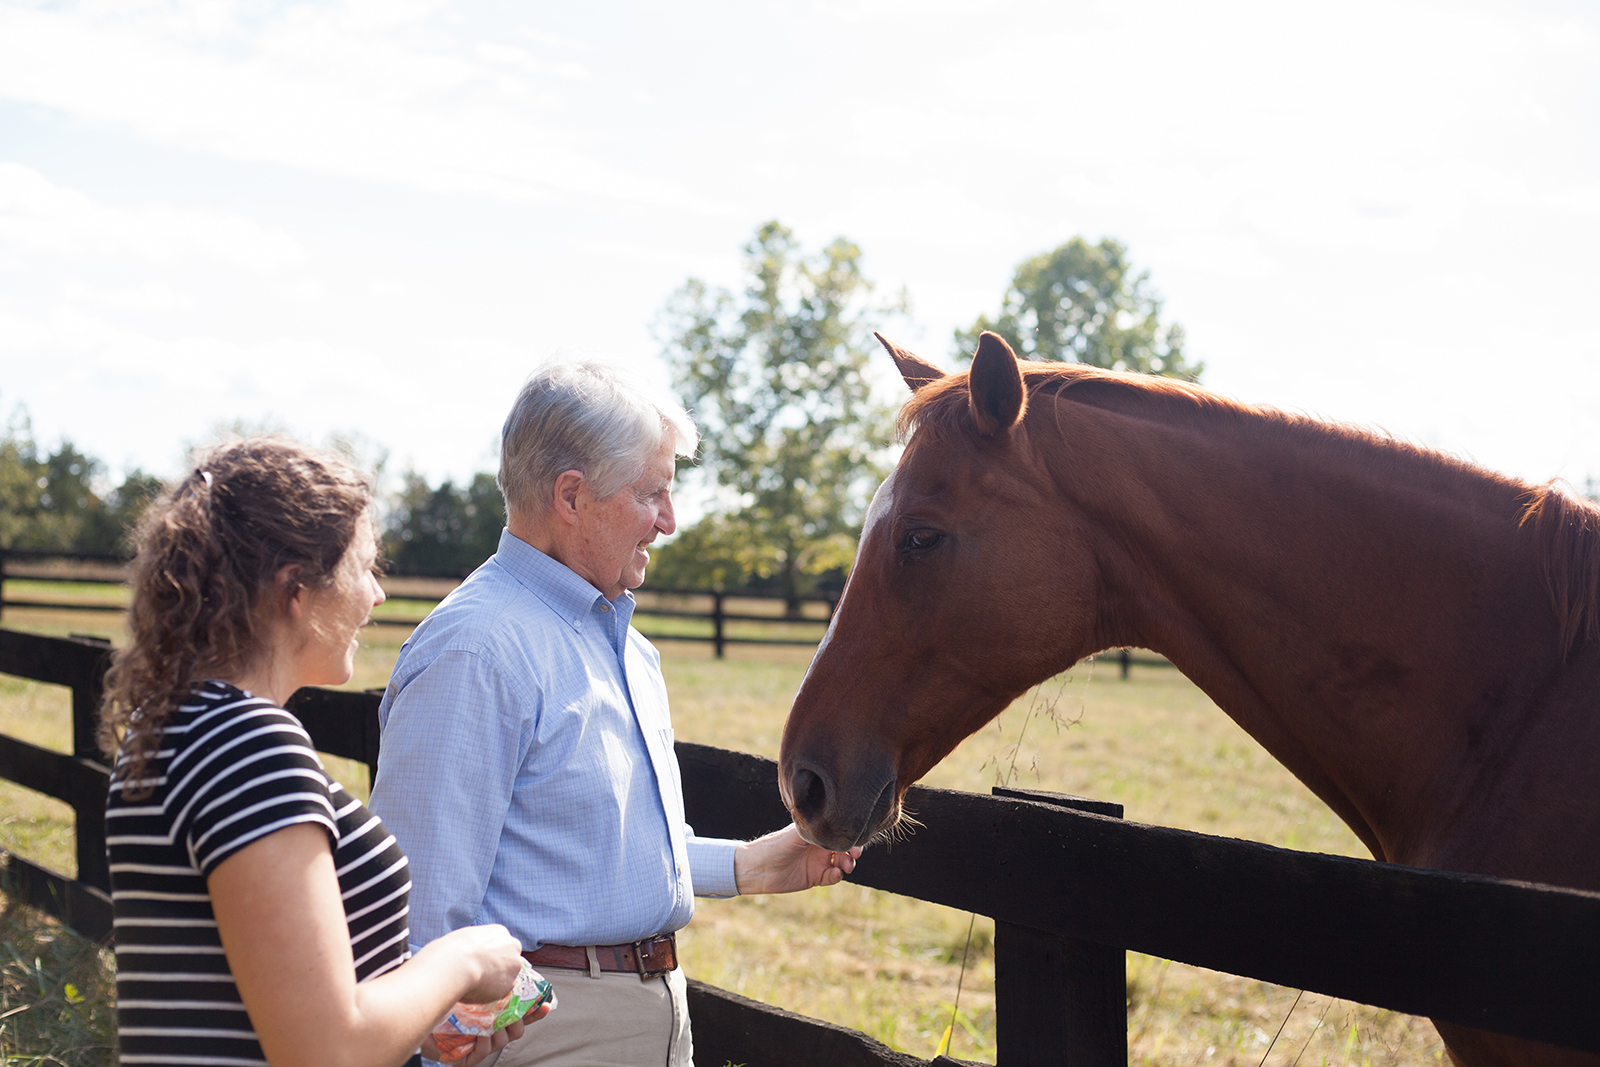 A home caregiver and an elderly man feed carrots to a horse.